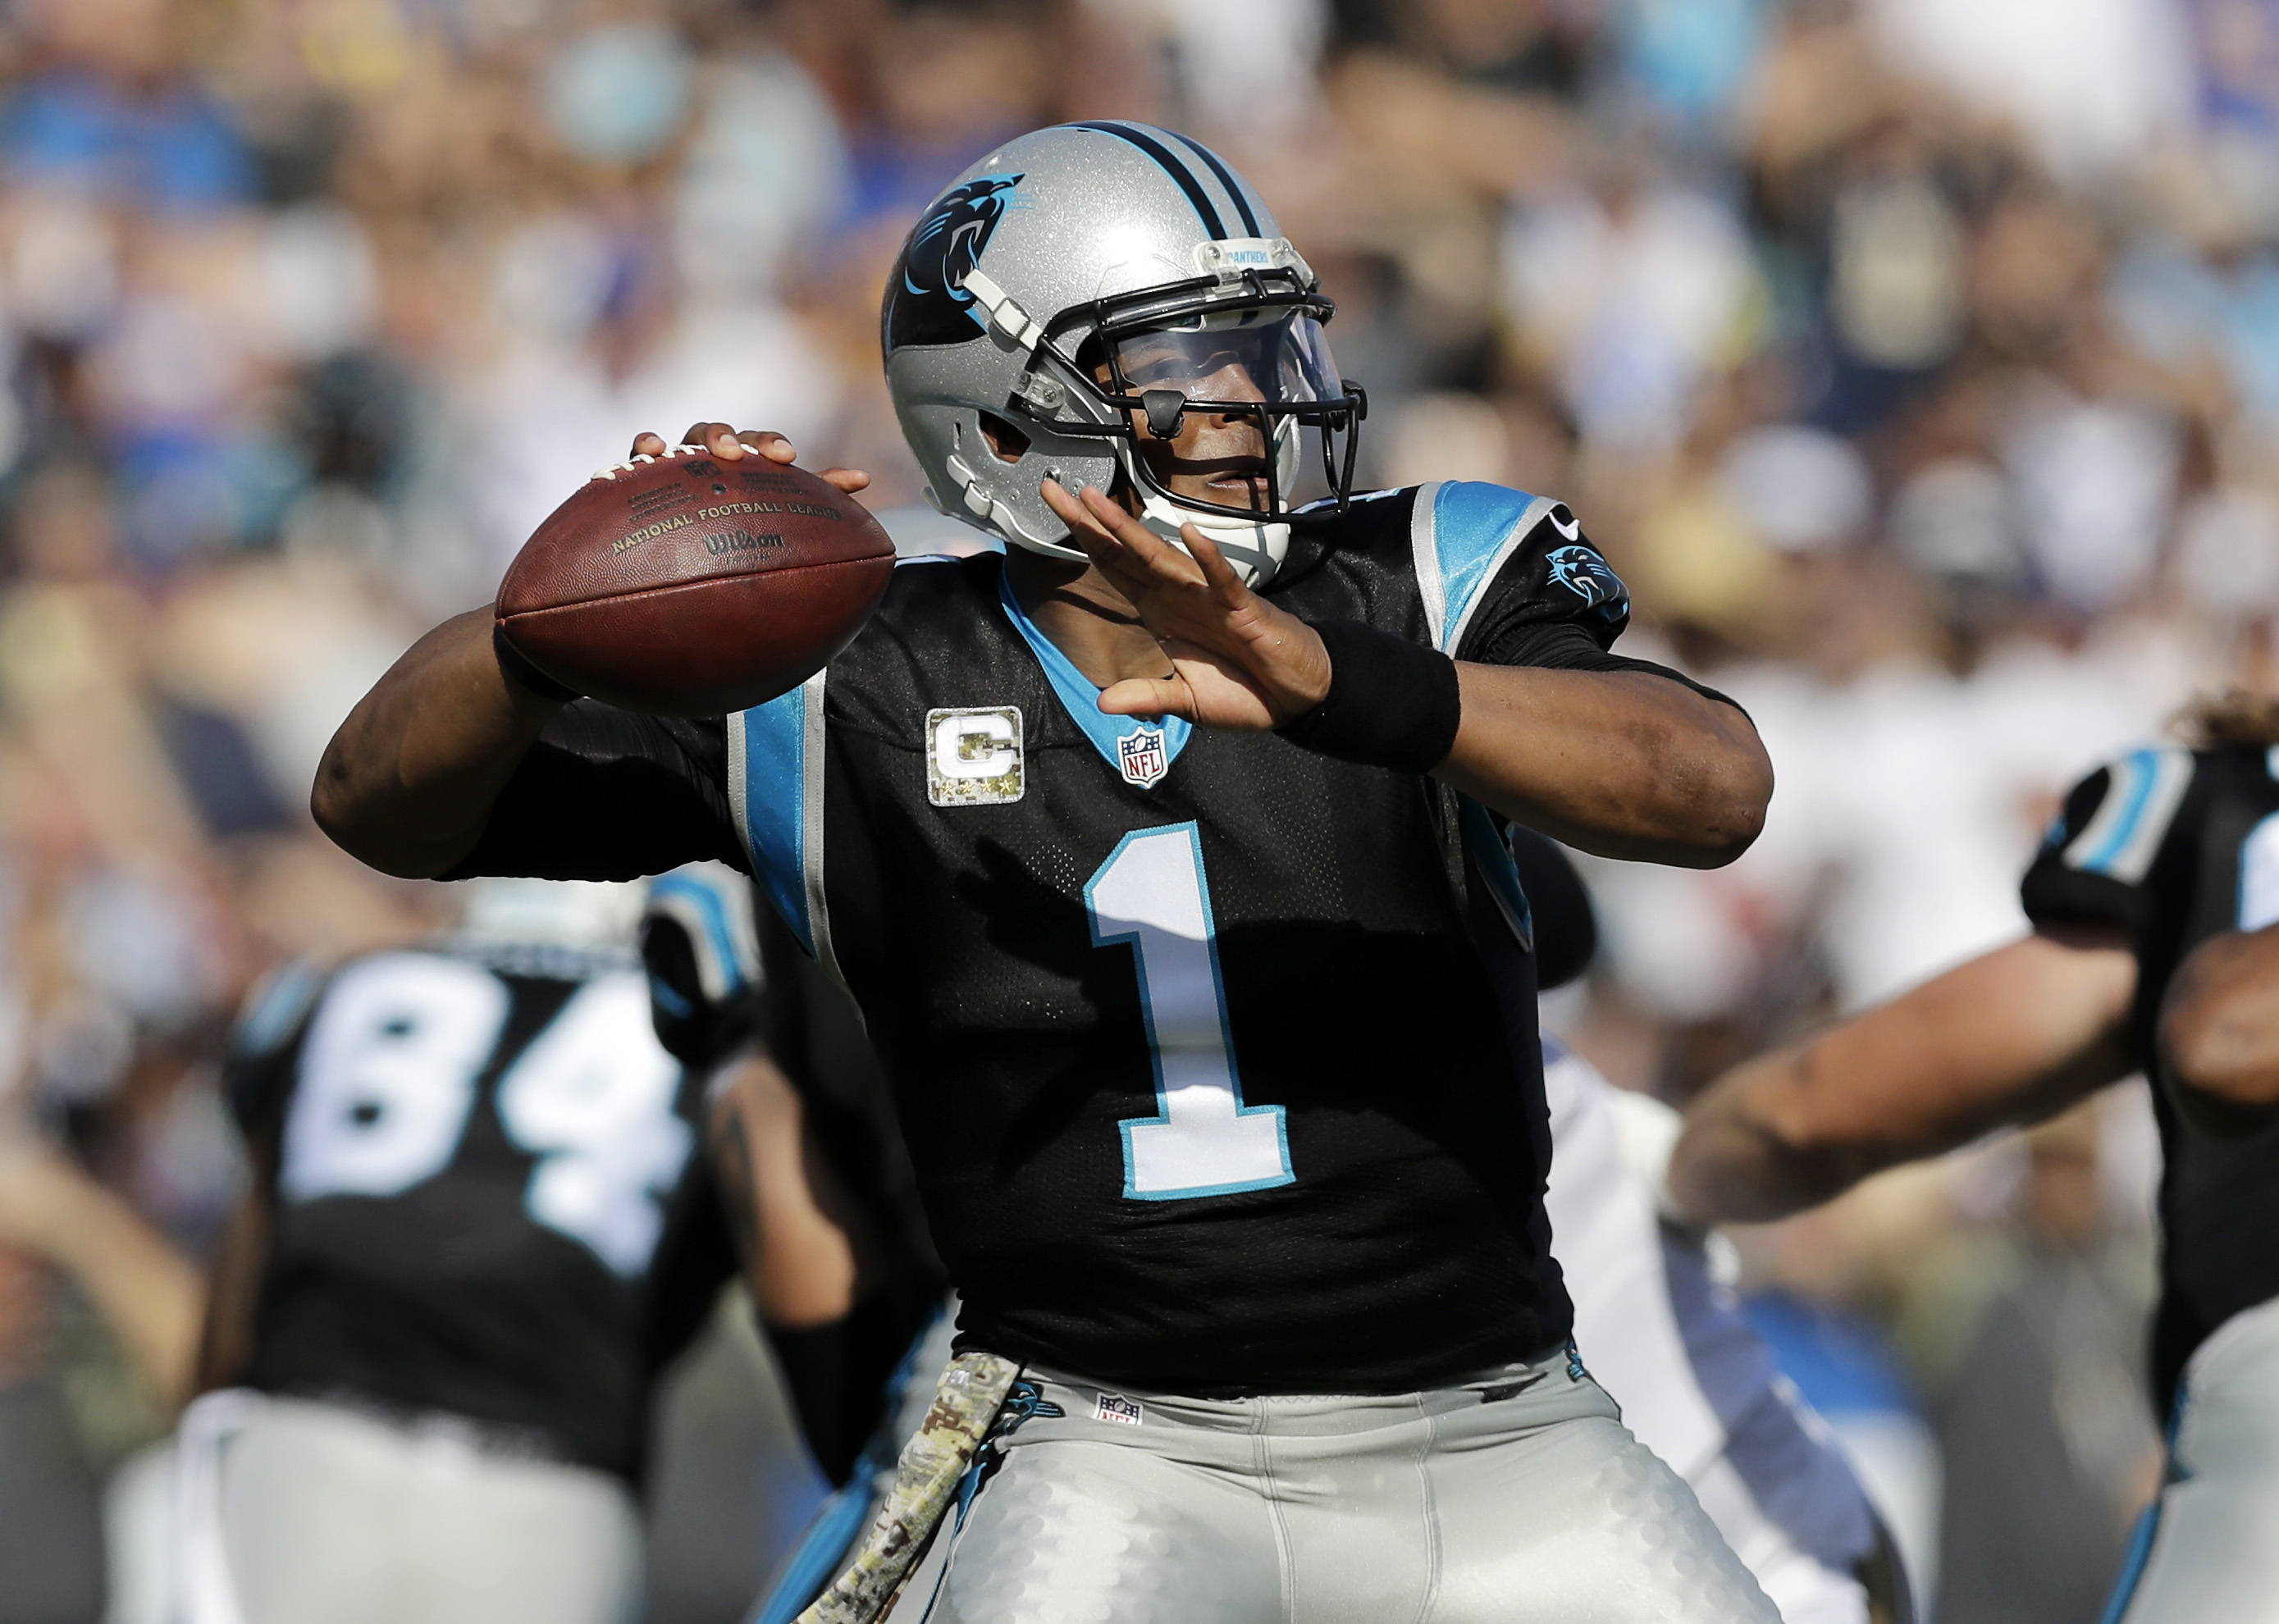 Carolina Panthers quarterback Cam Newton passes during the first half of an NFL football game against the Los Angeles Rams, Sunday, Nov. 6, 2016, in Los Angeles. (AP Photo/Jae C. Hong)